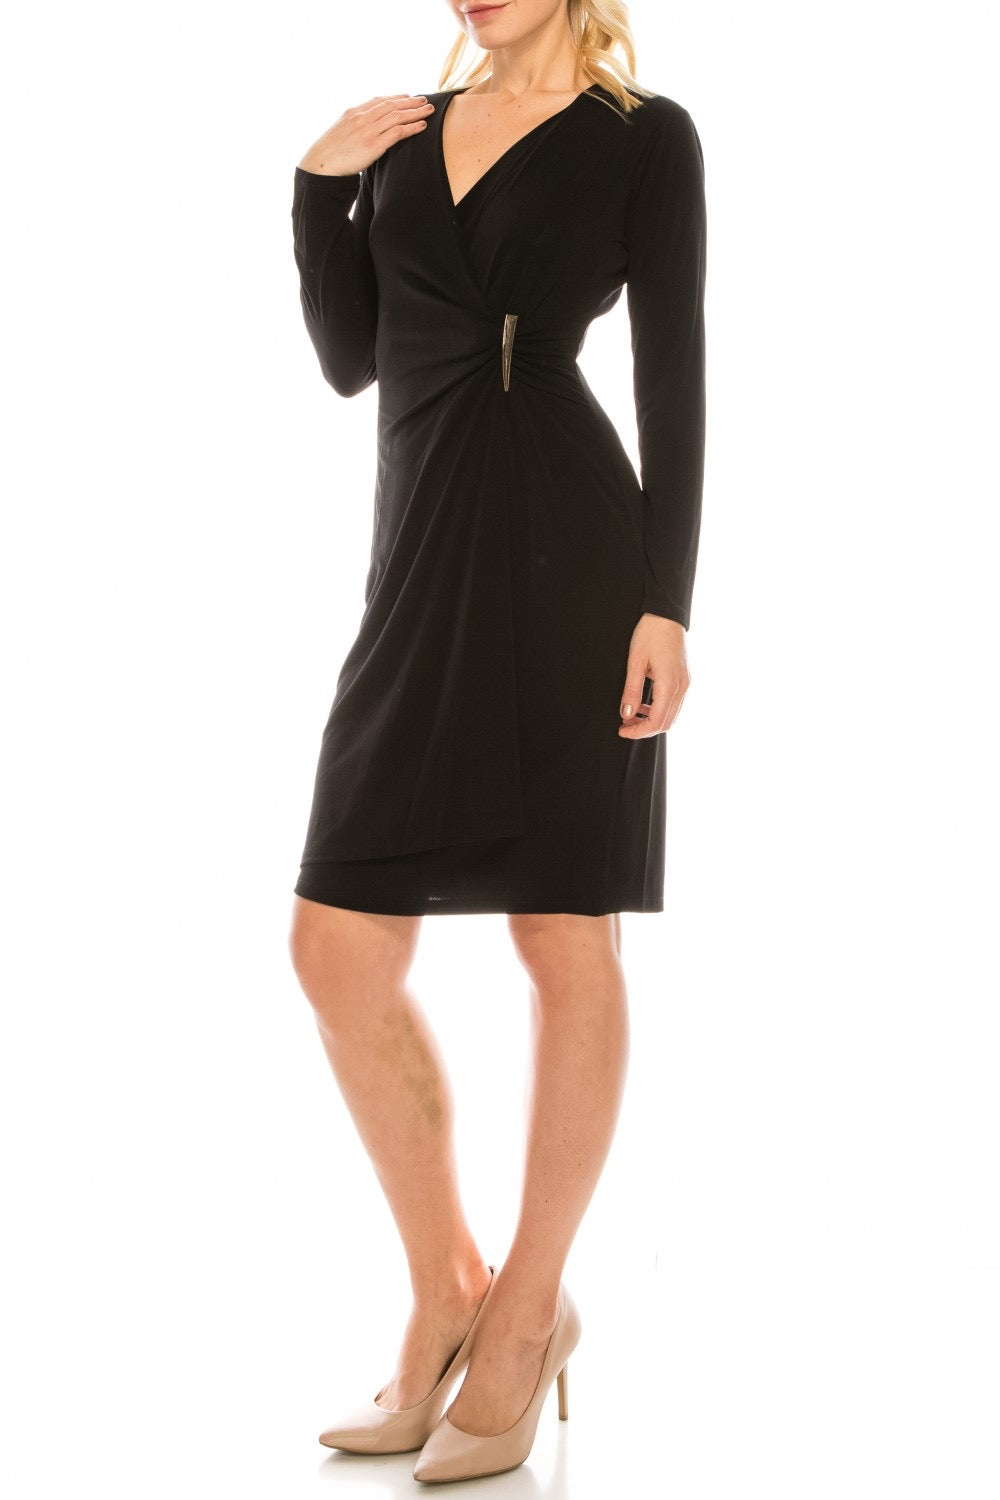 BLACK LONG SLEEVE DRESS